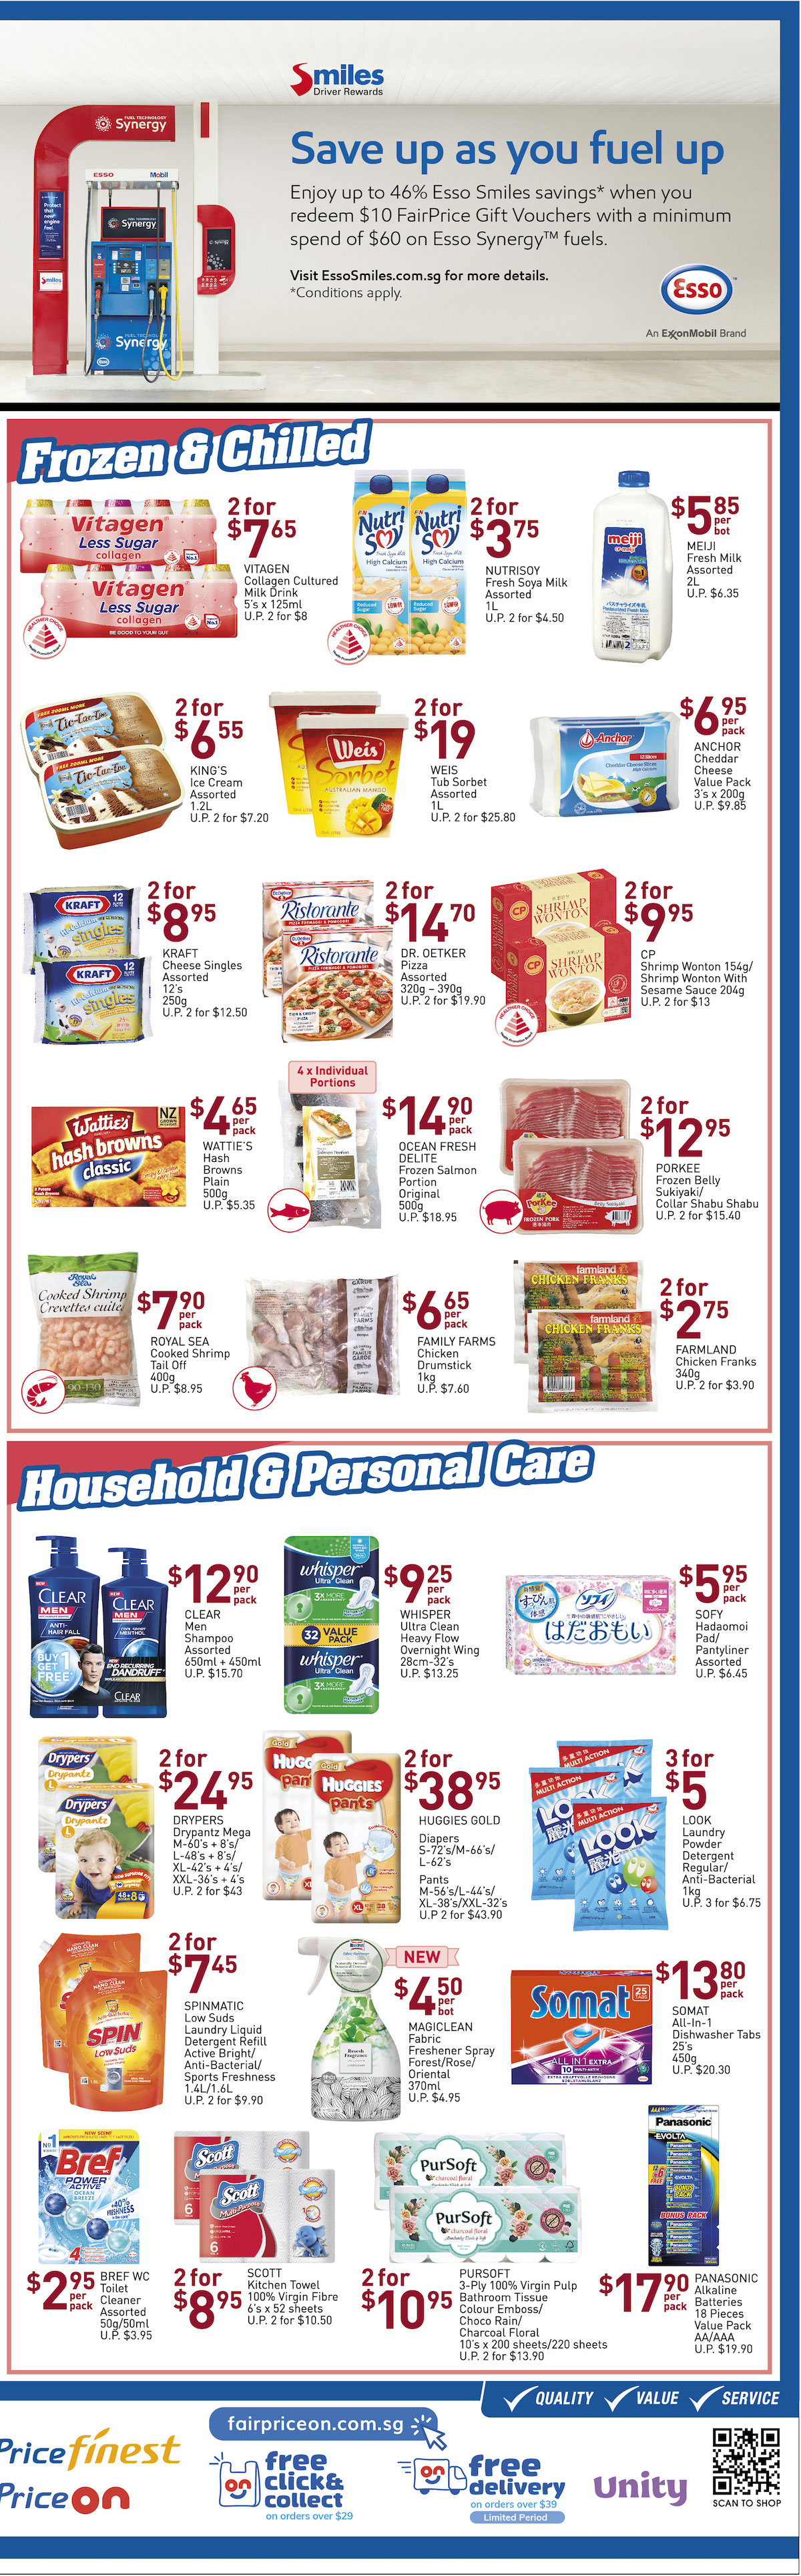 NTUC FairPrice Singapore Your Weekly Saver Promotion 22-28 Aug 2019 | Why Not Deals 5 & Promotions